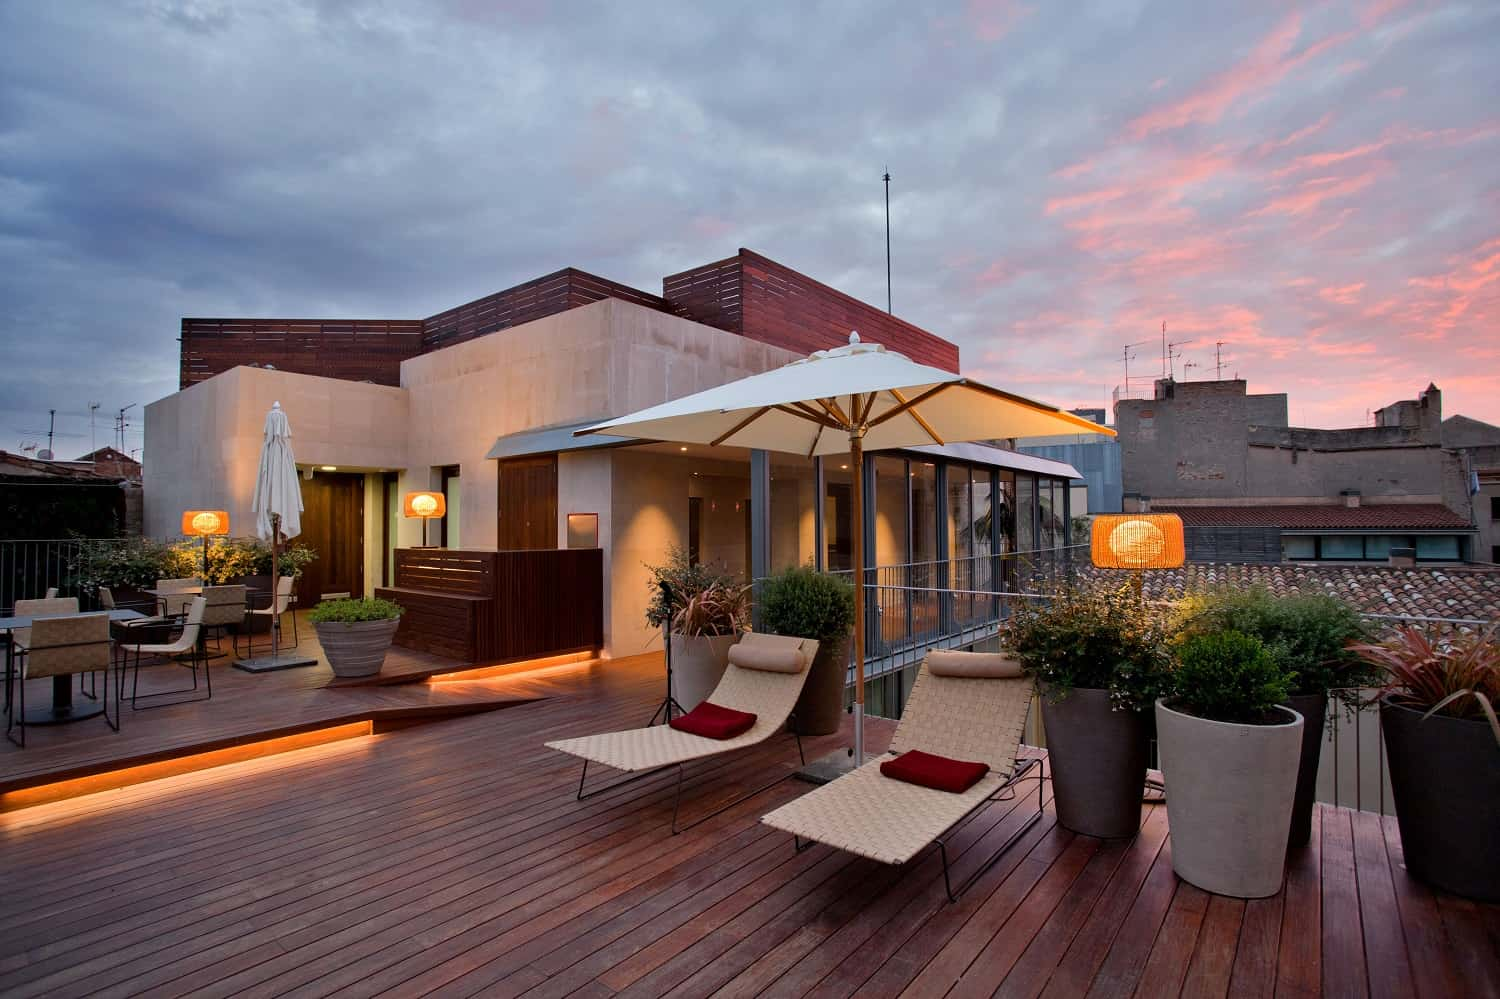 Top 29 roof terraces in barcelona 2019 stunning rooftop for Arredare un terrazzo grande